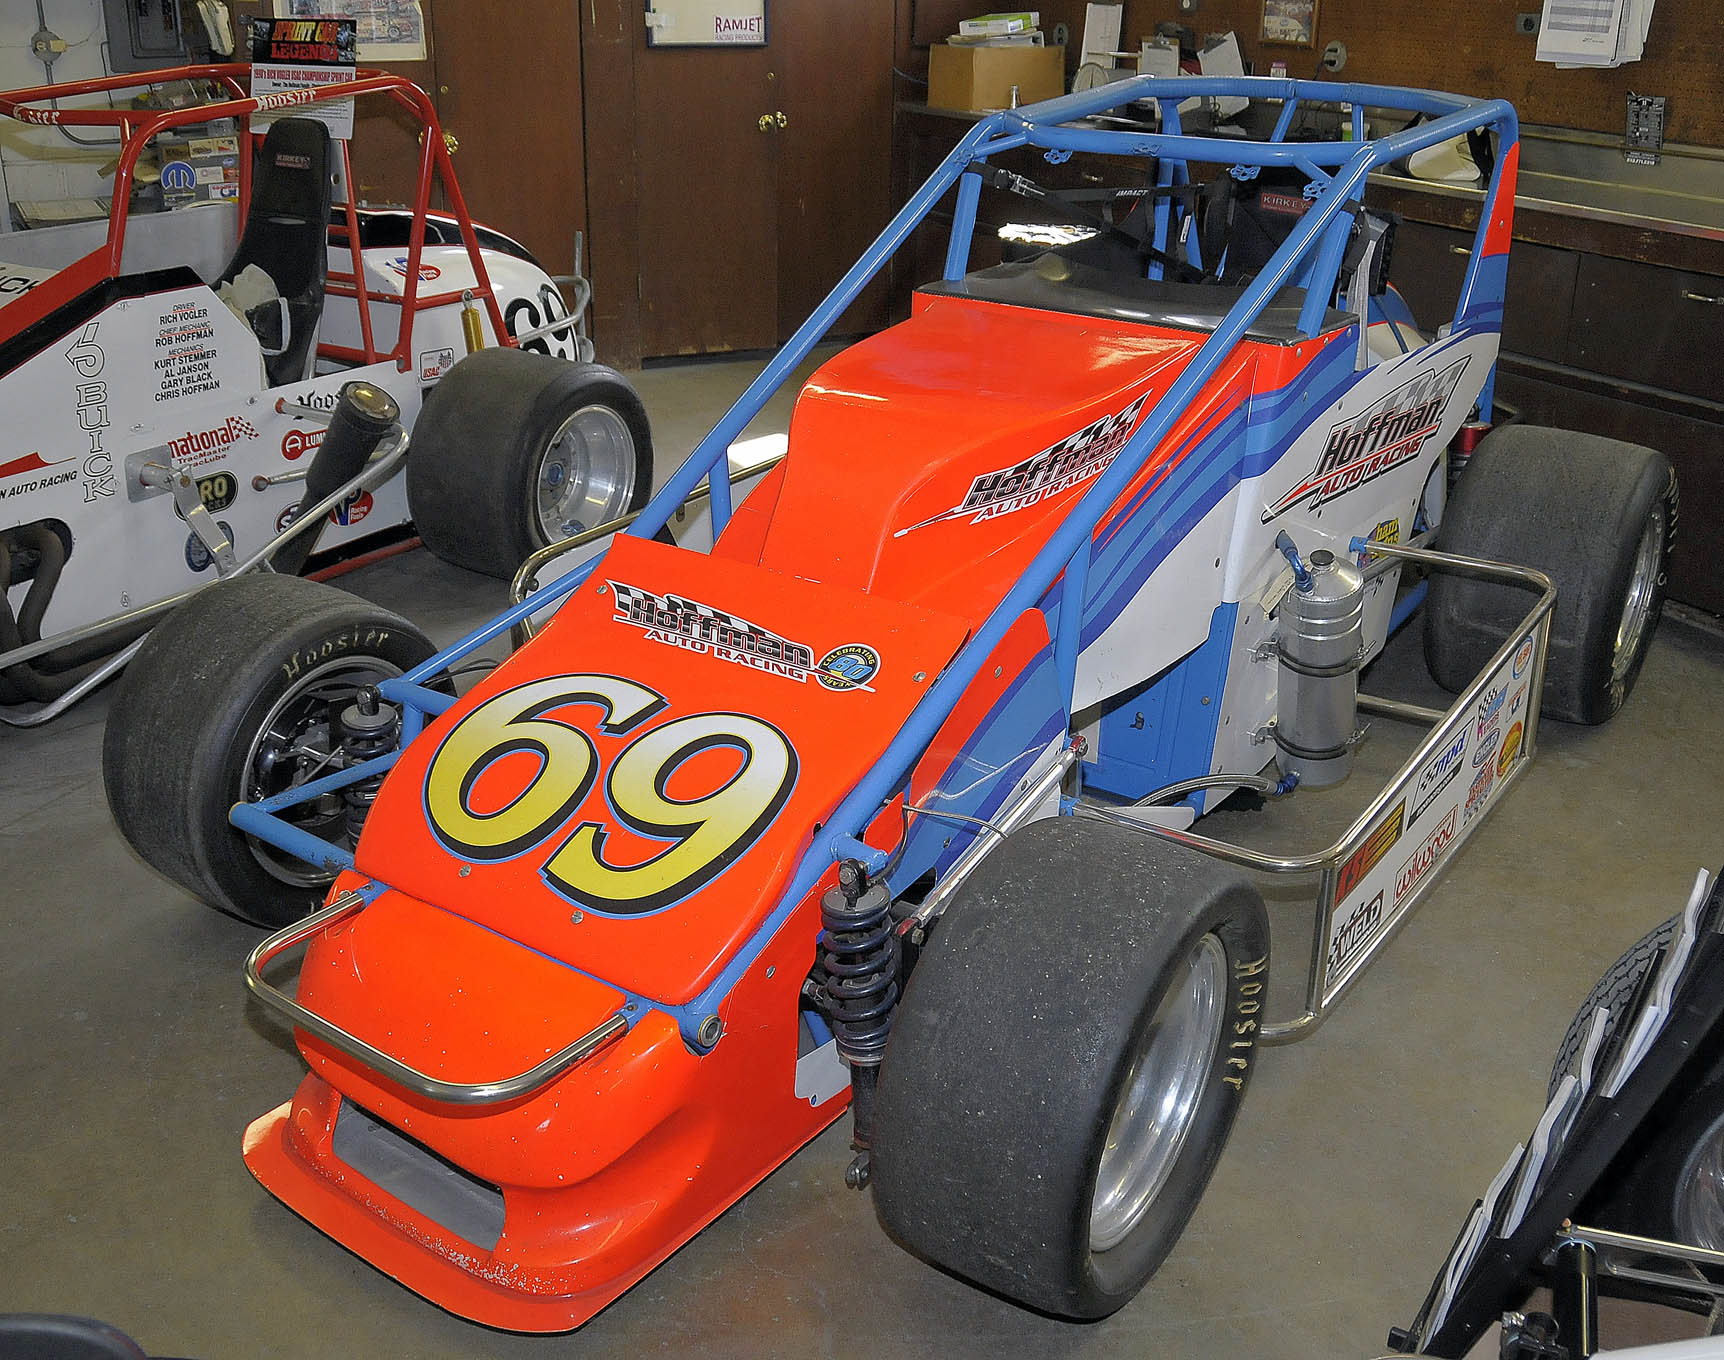 The famous V-6 powered pavement sprint car.